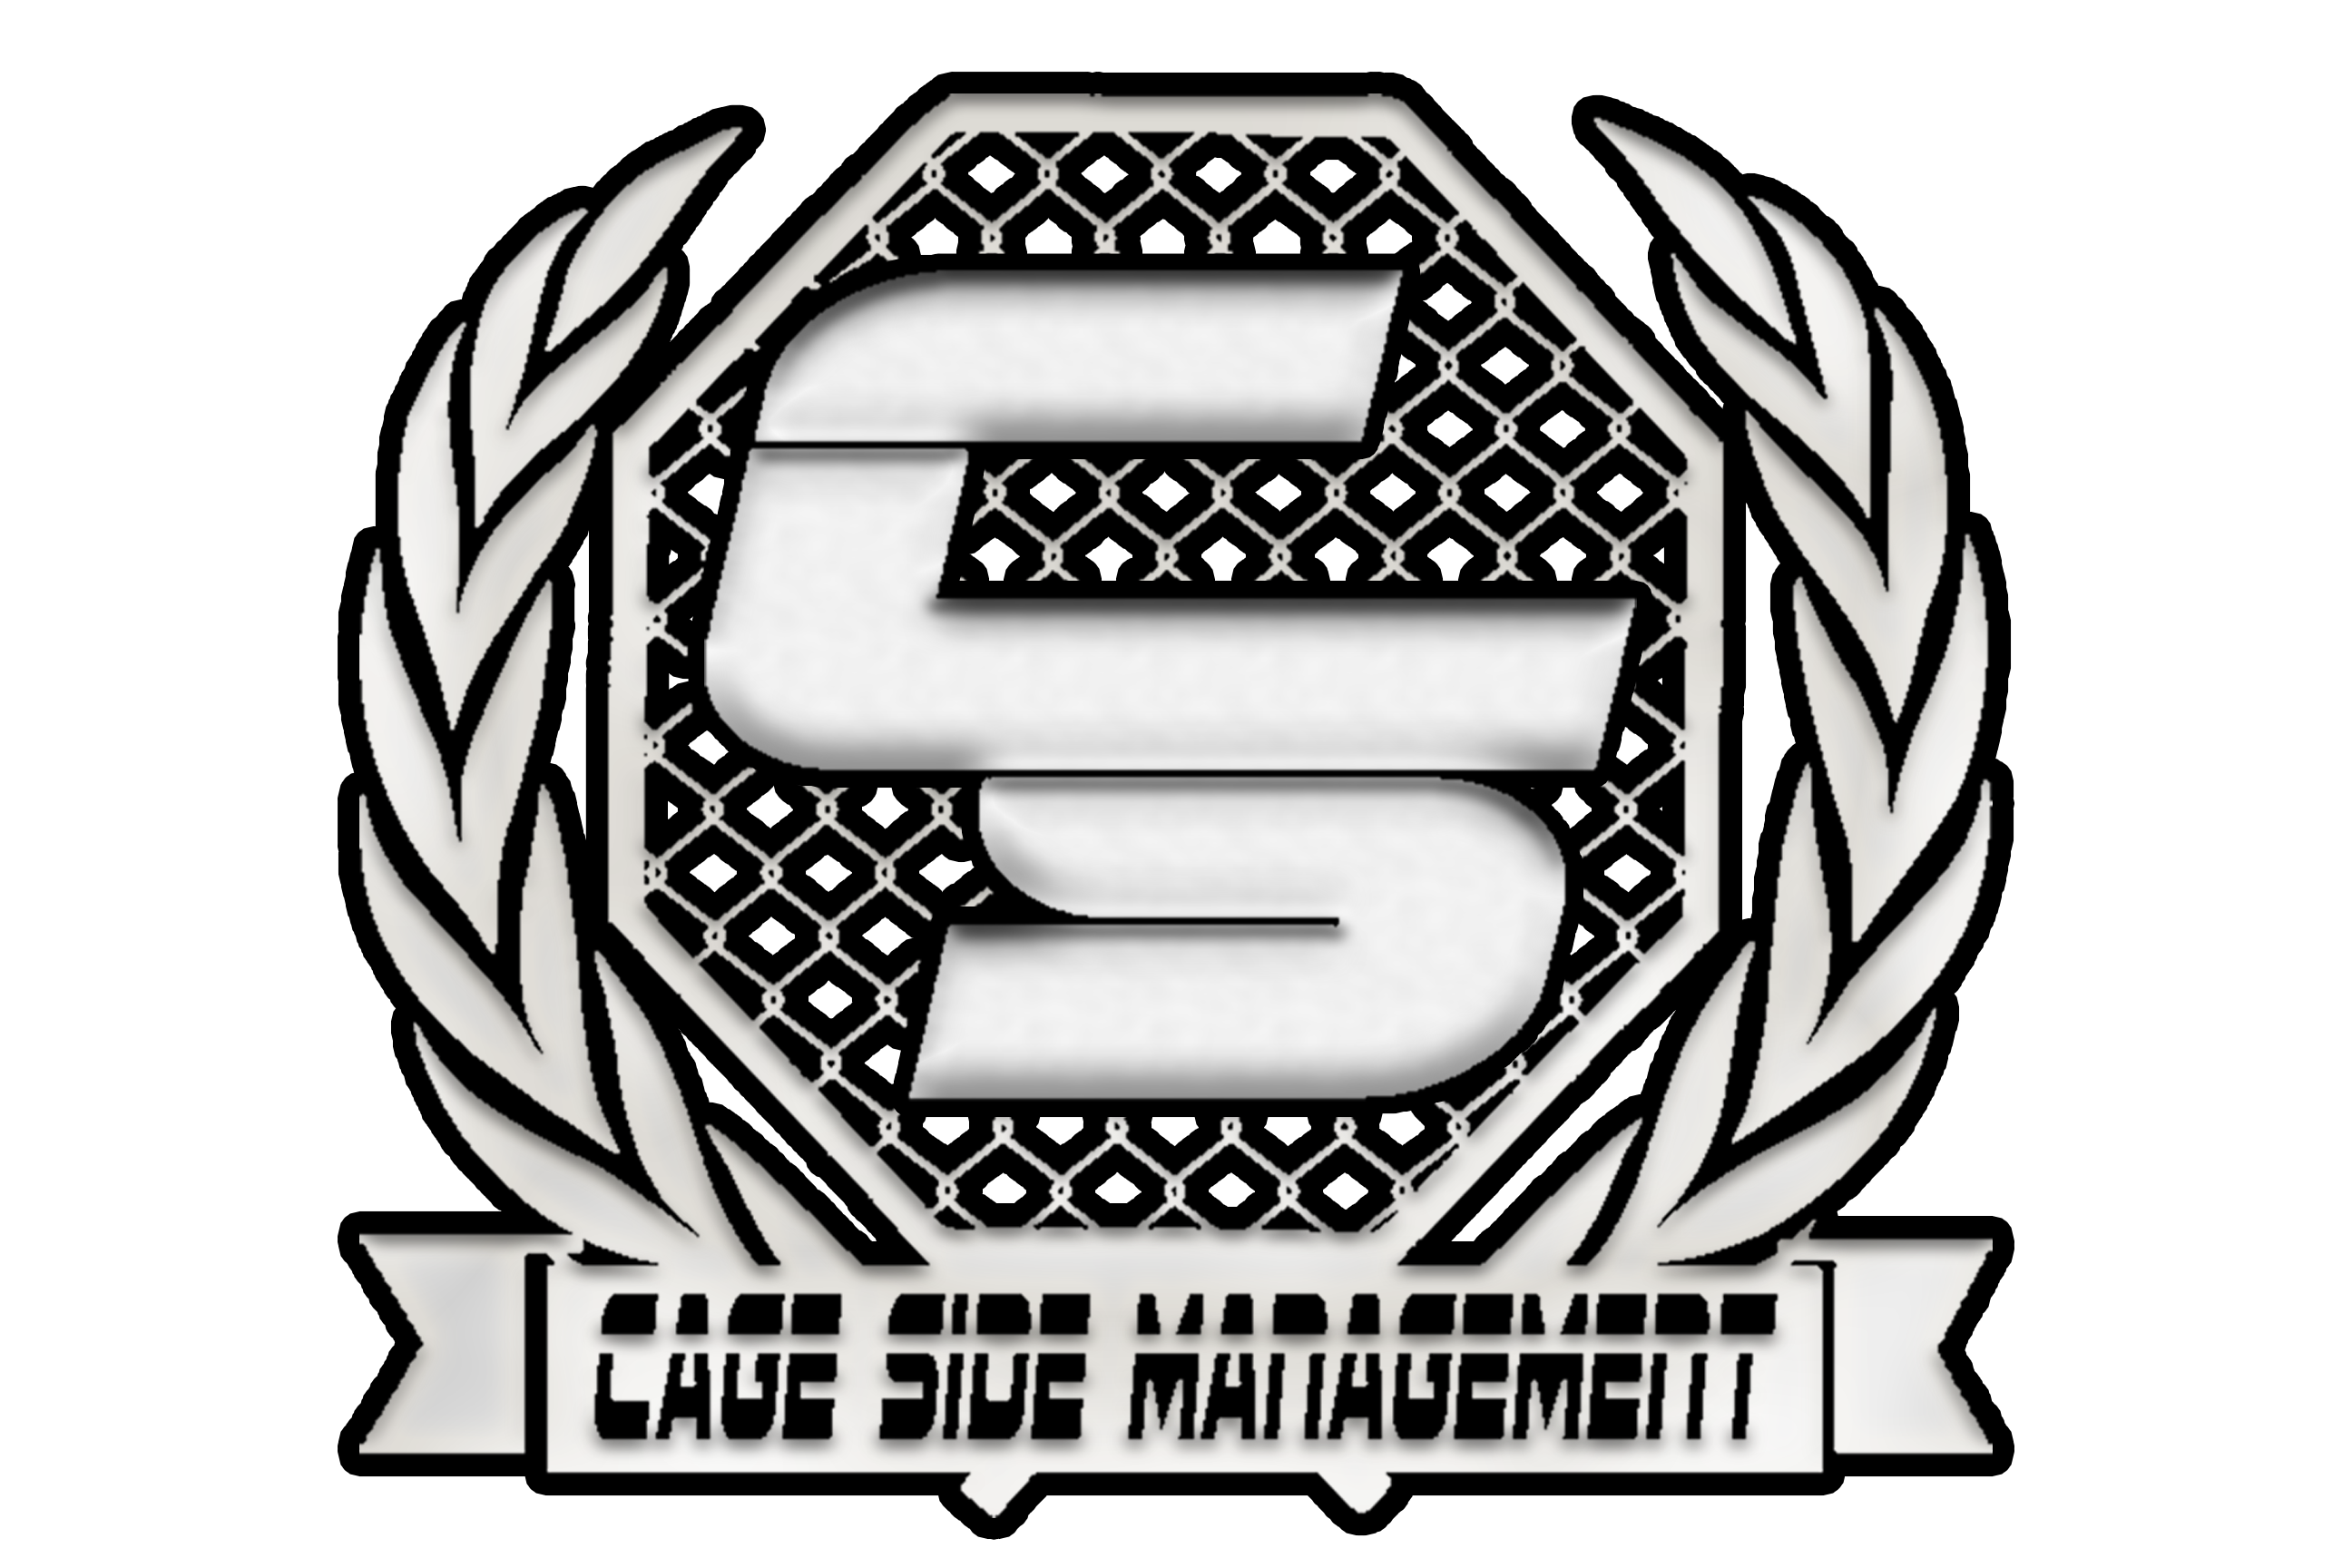 CageSide Management